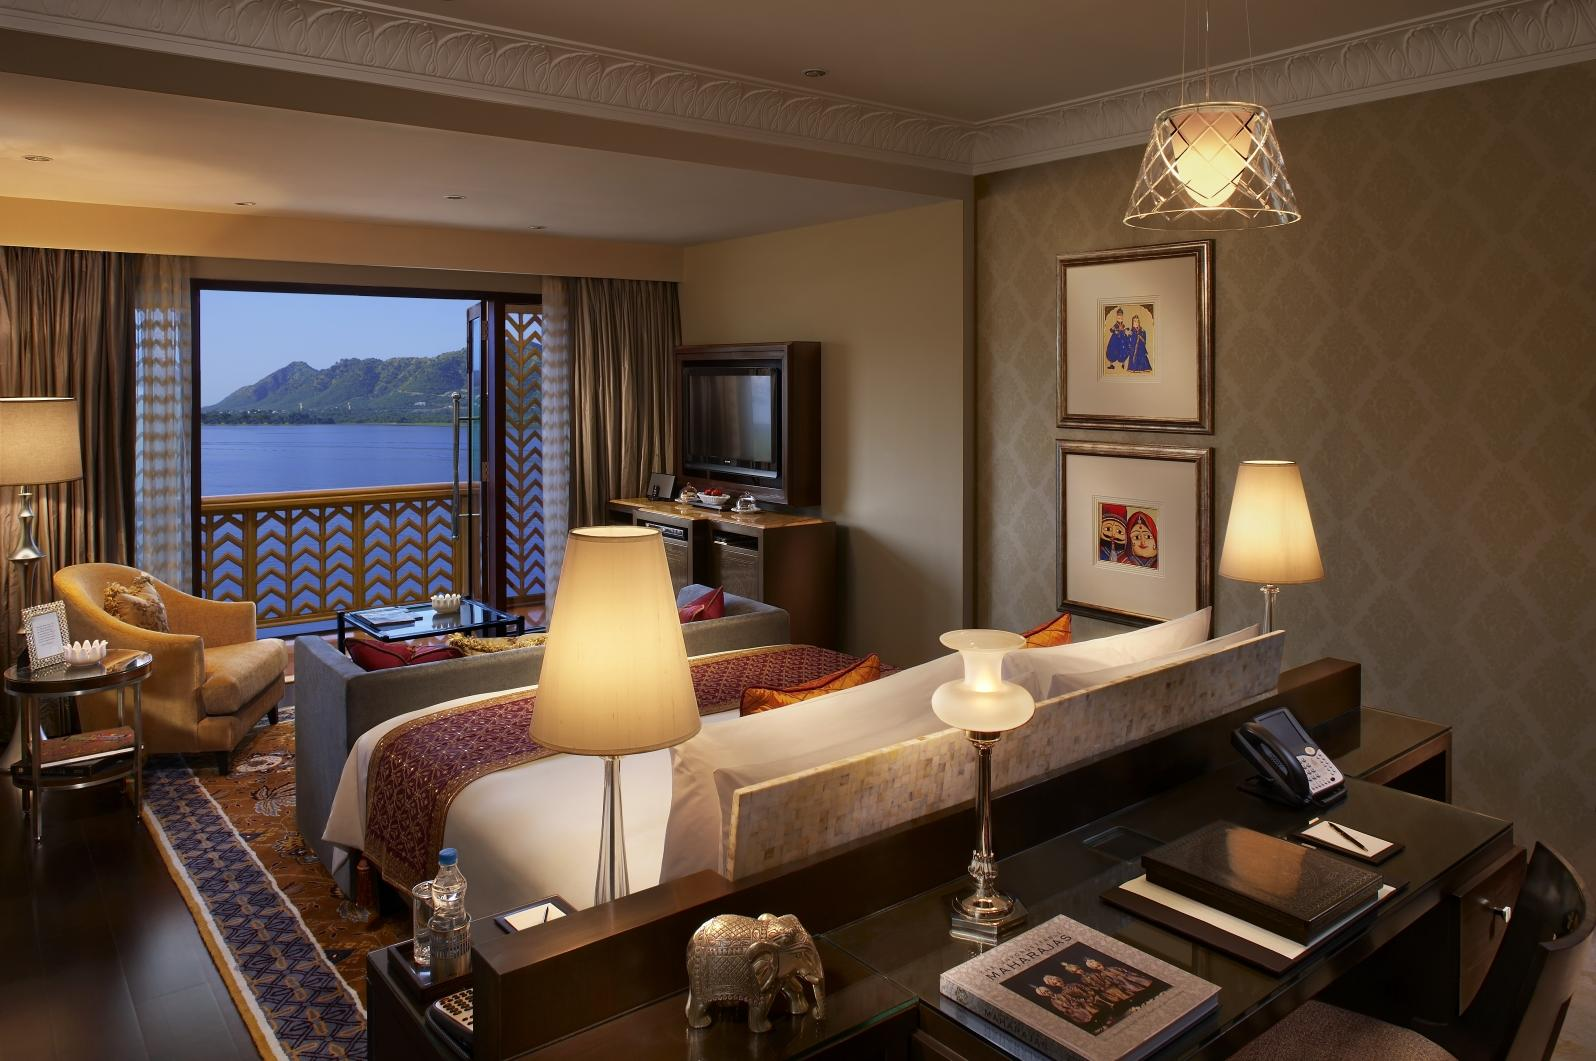 Grande Heritage Lake View Room with Balcony